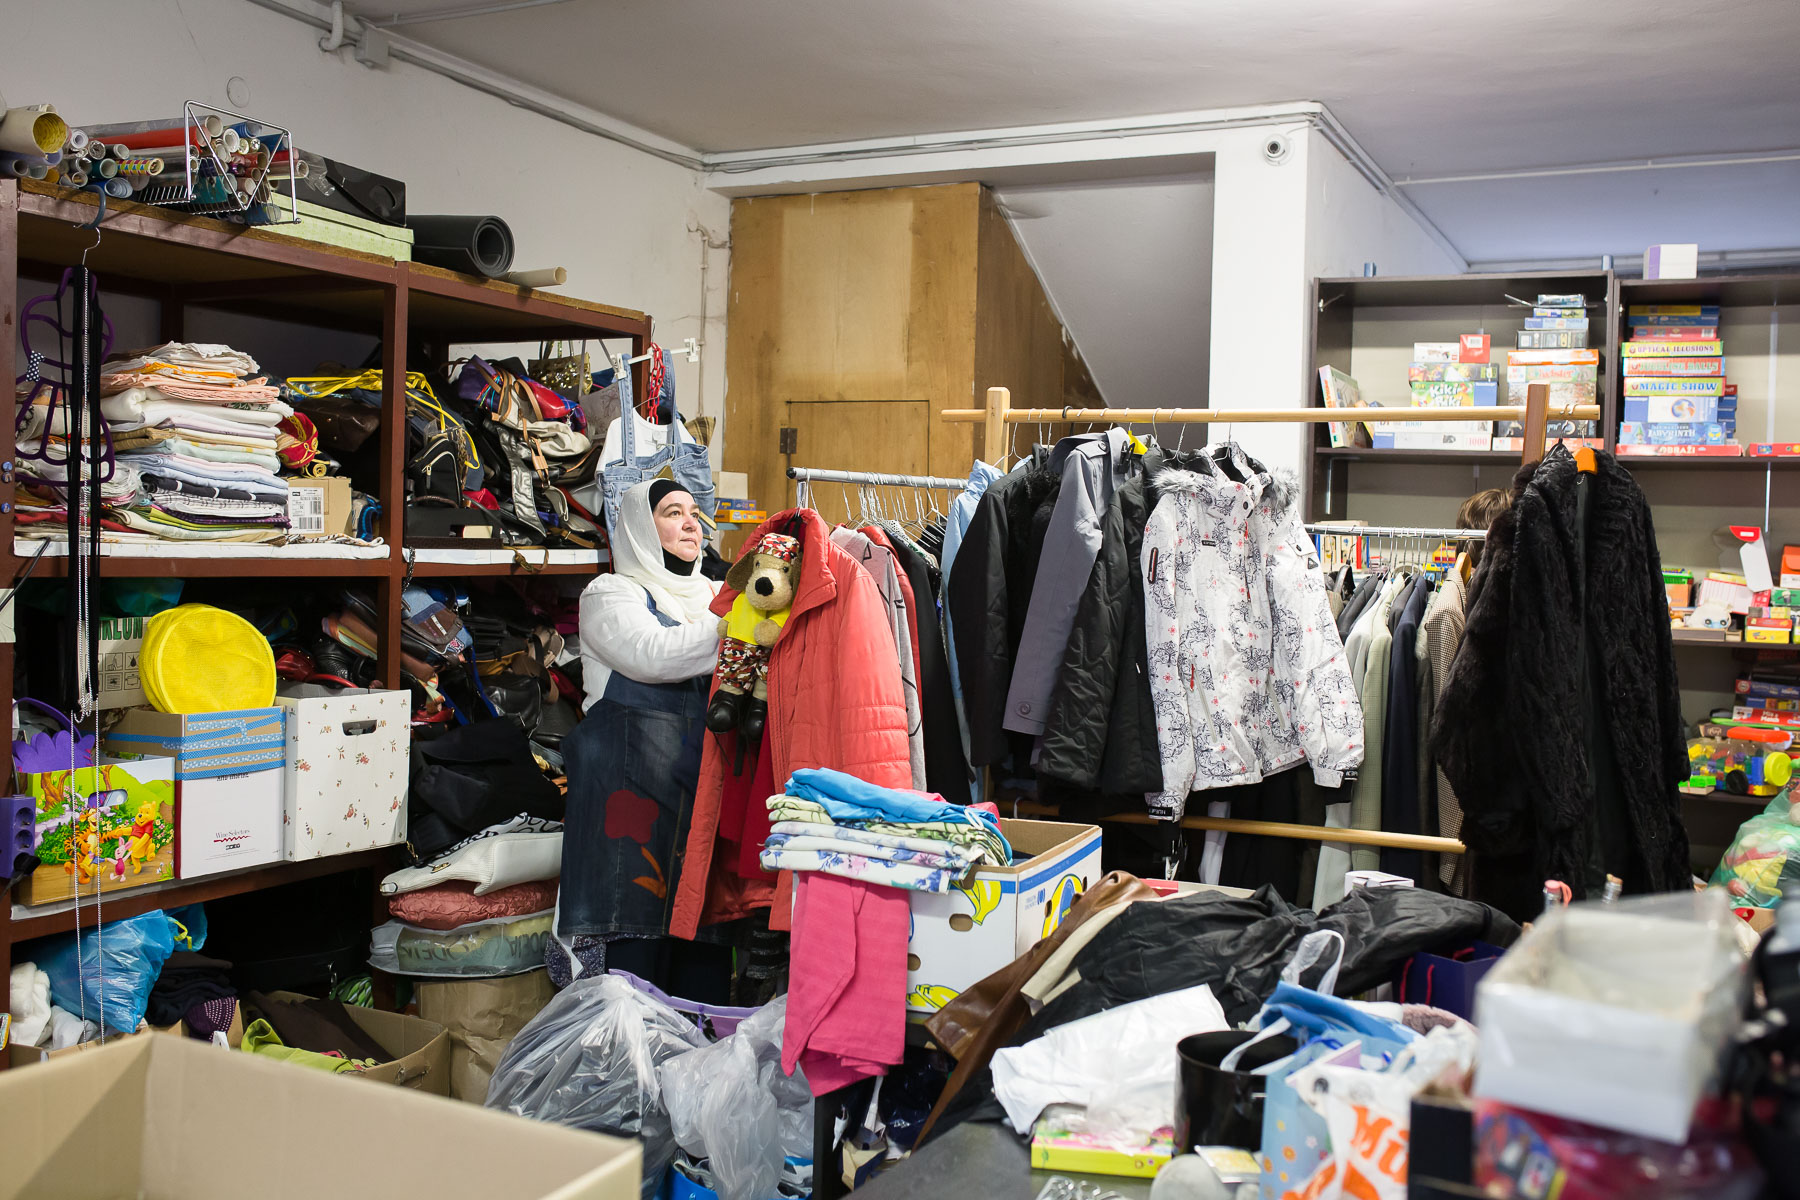 Senada inspects and stores discarded useable items in the storage of the Reuse center on May 8, 2019..